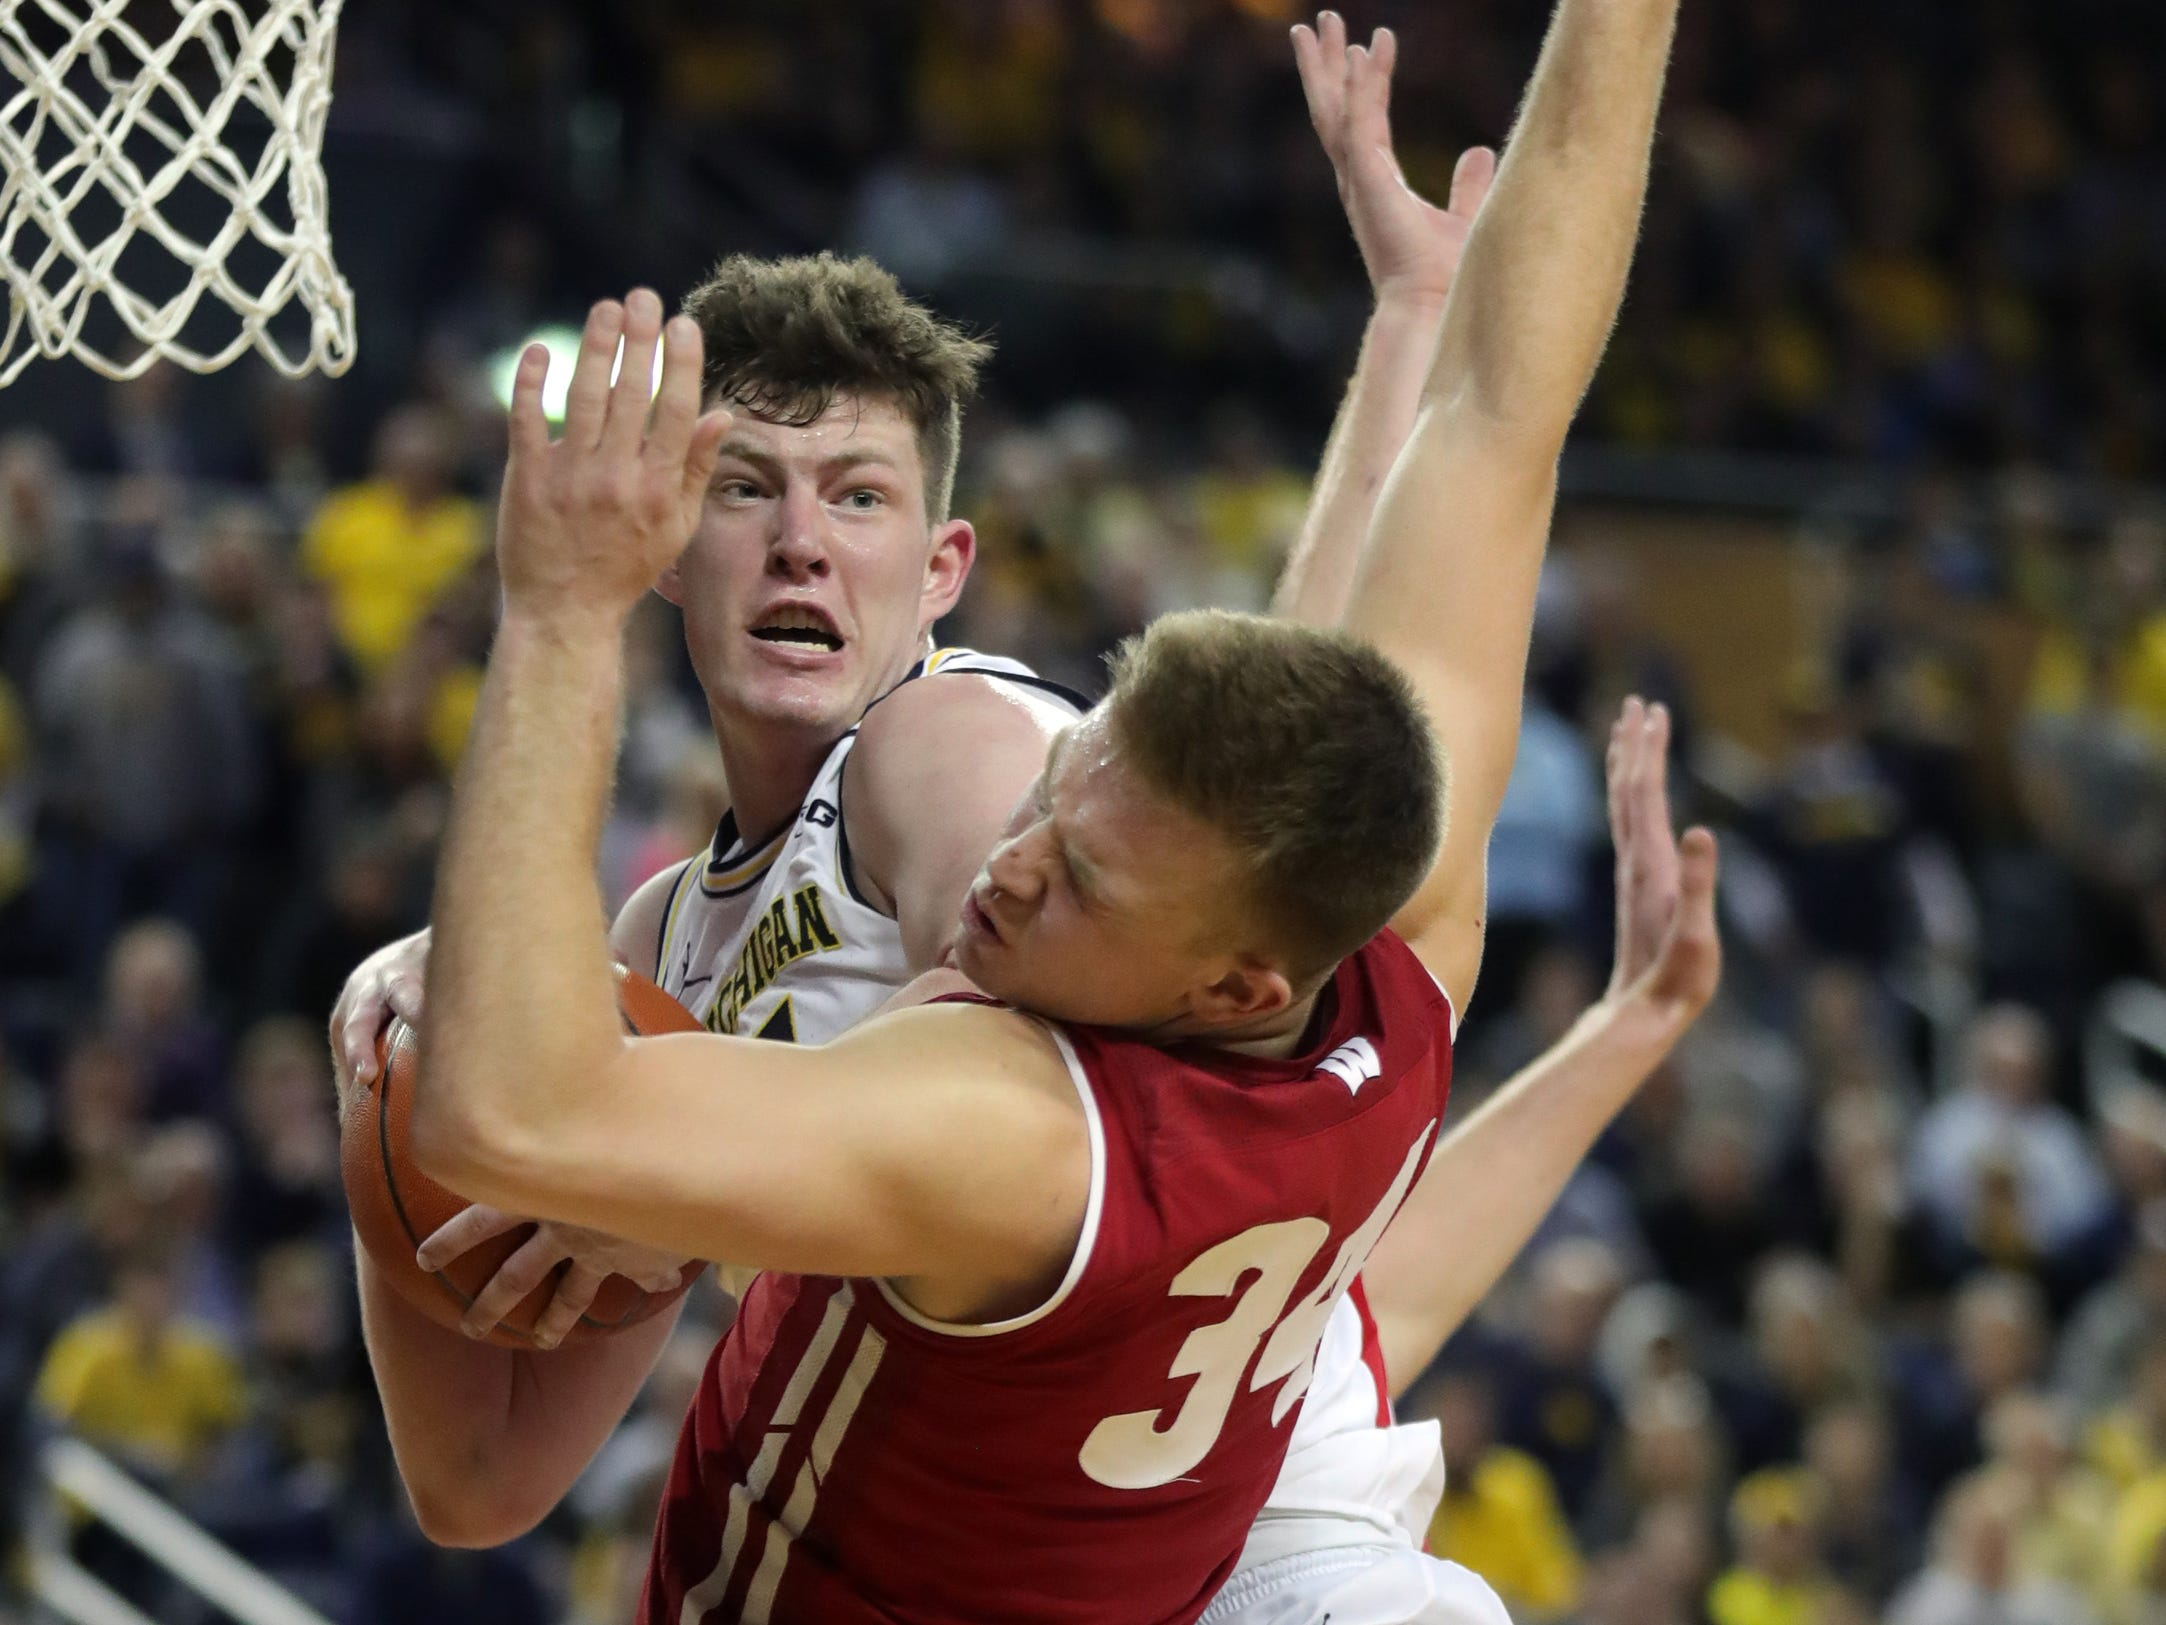 Michigan center Jon Teske rebounds against Wisconsin forward Nate Reuvers during the second half Saturday, Feb. 9, 2019 at the Crisler Center.